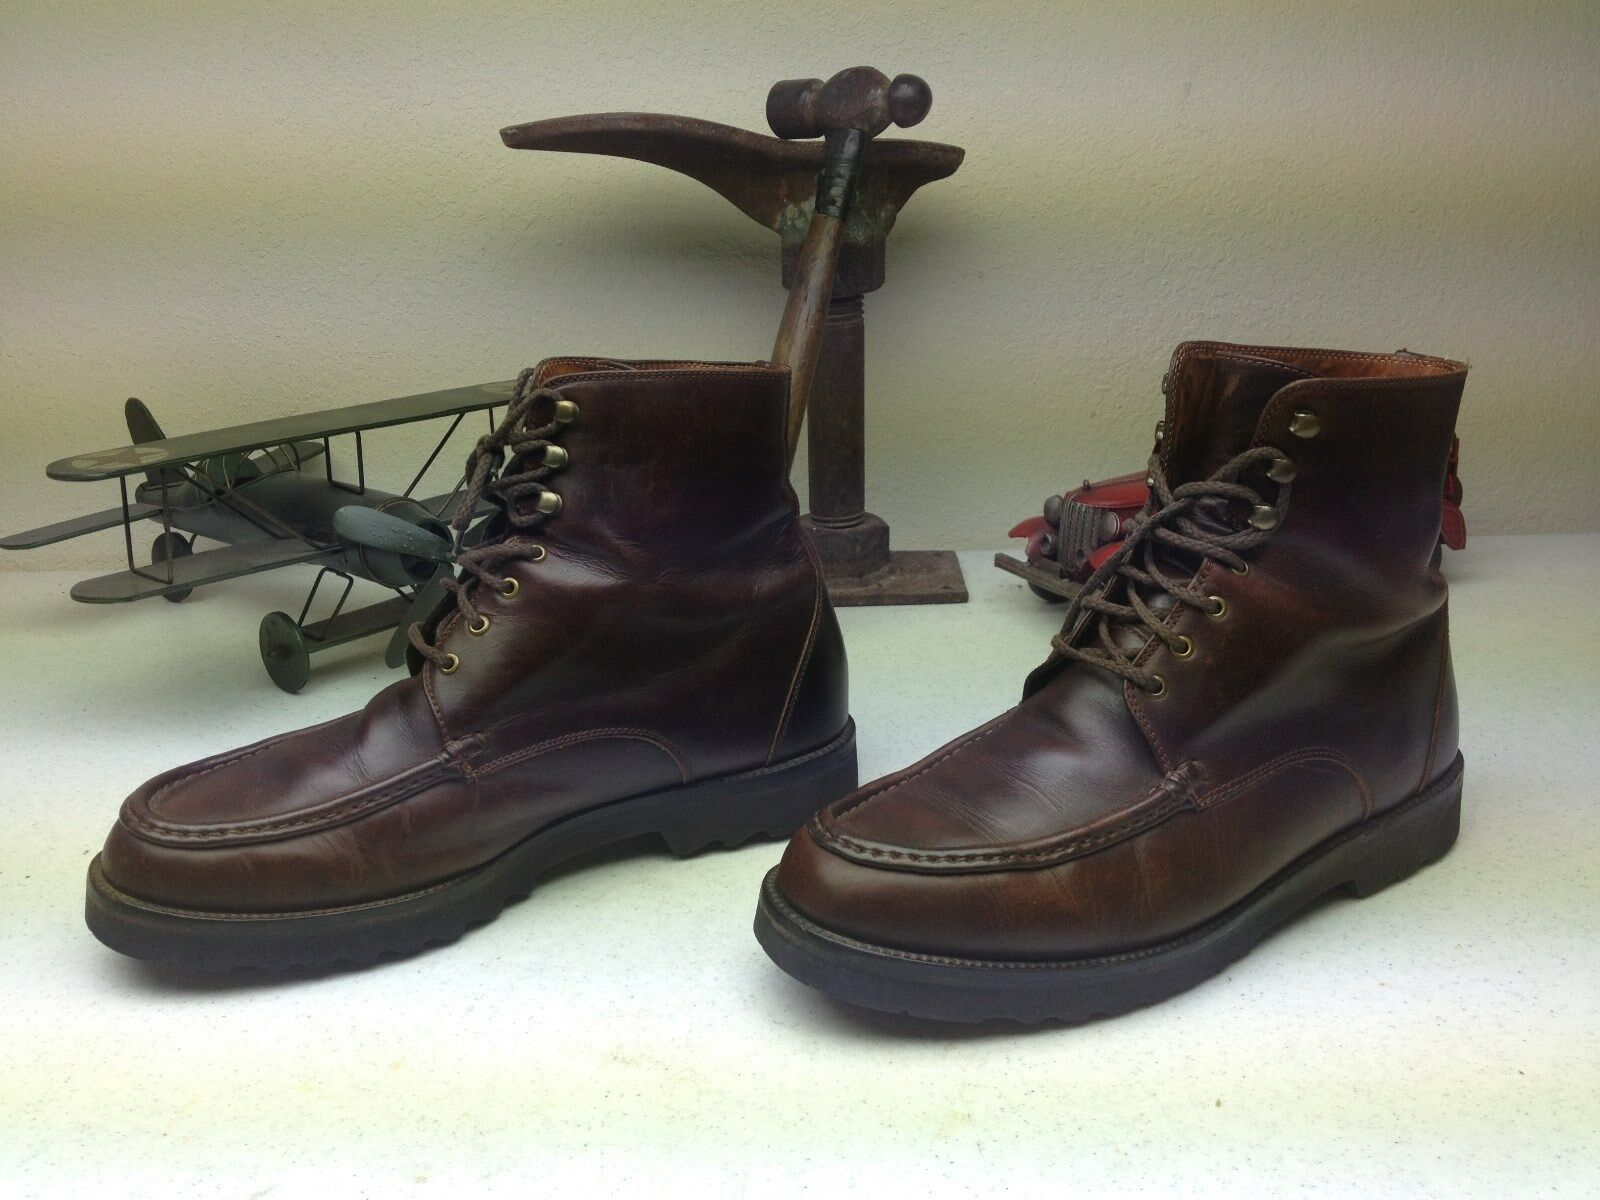 COLE HAAN BROWN LEATHER LACE UP BOOTS SIZE 11 D